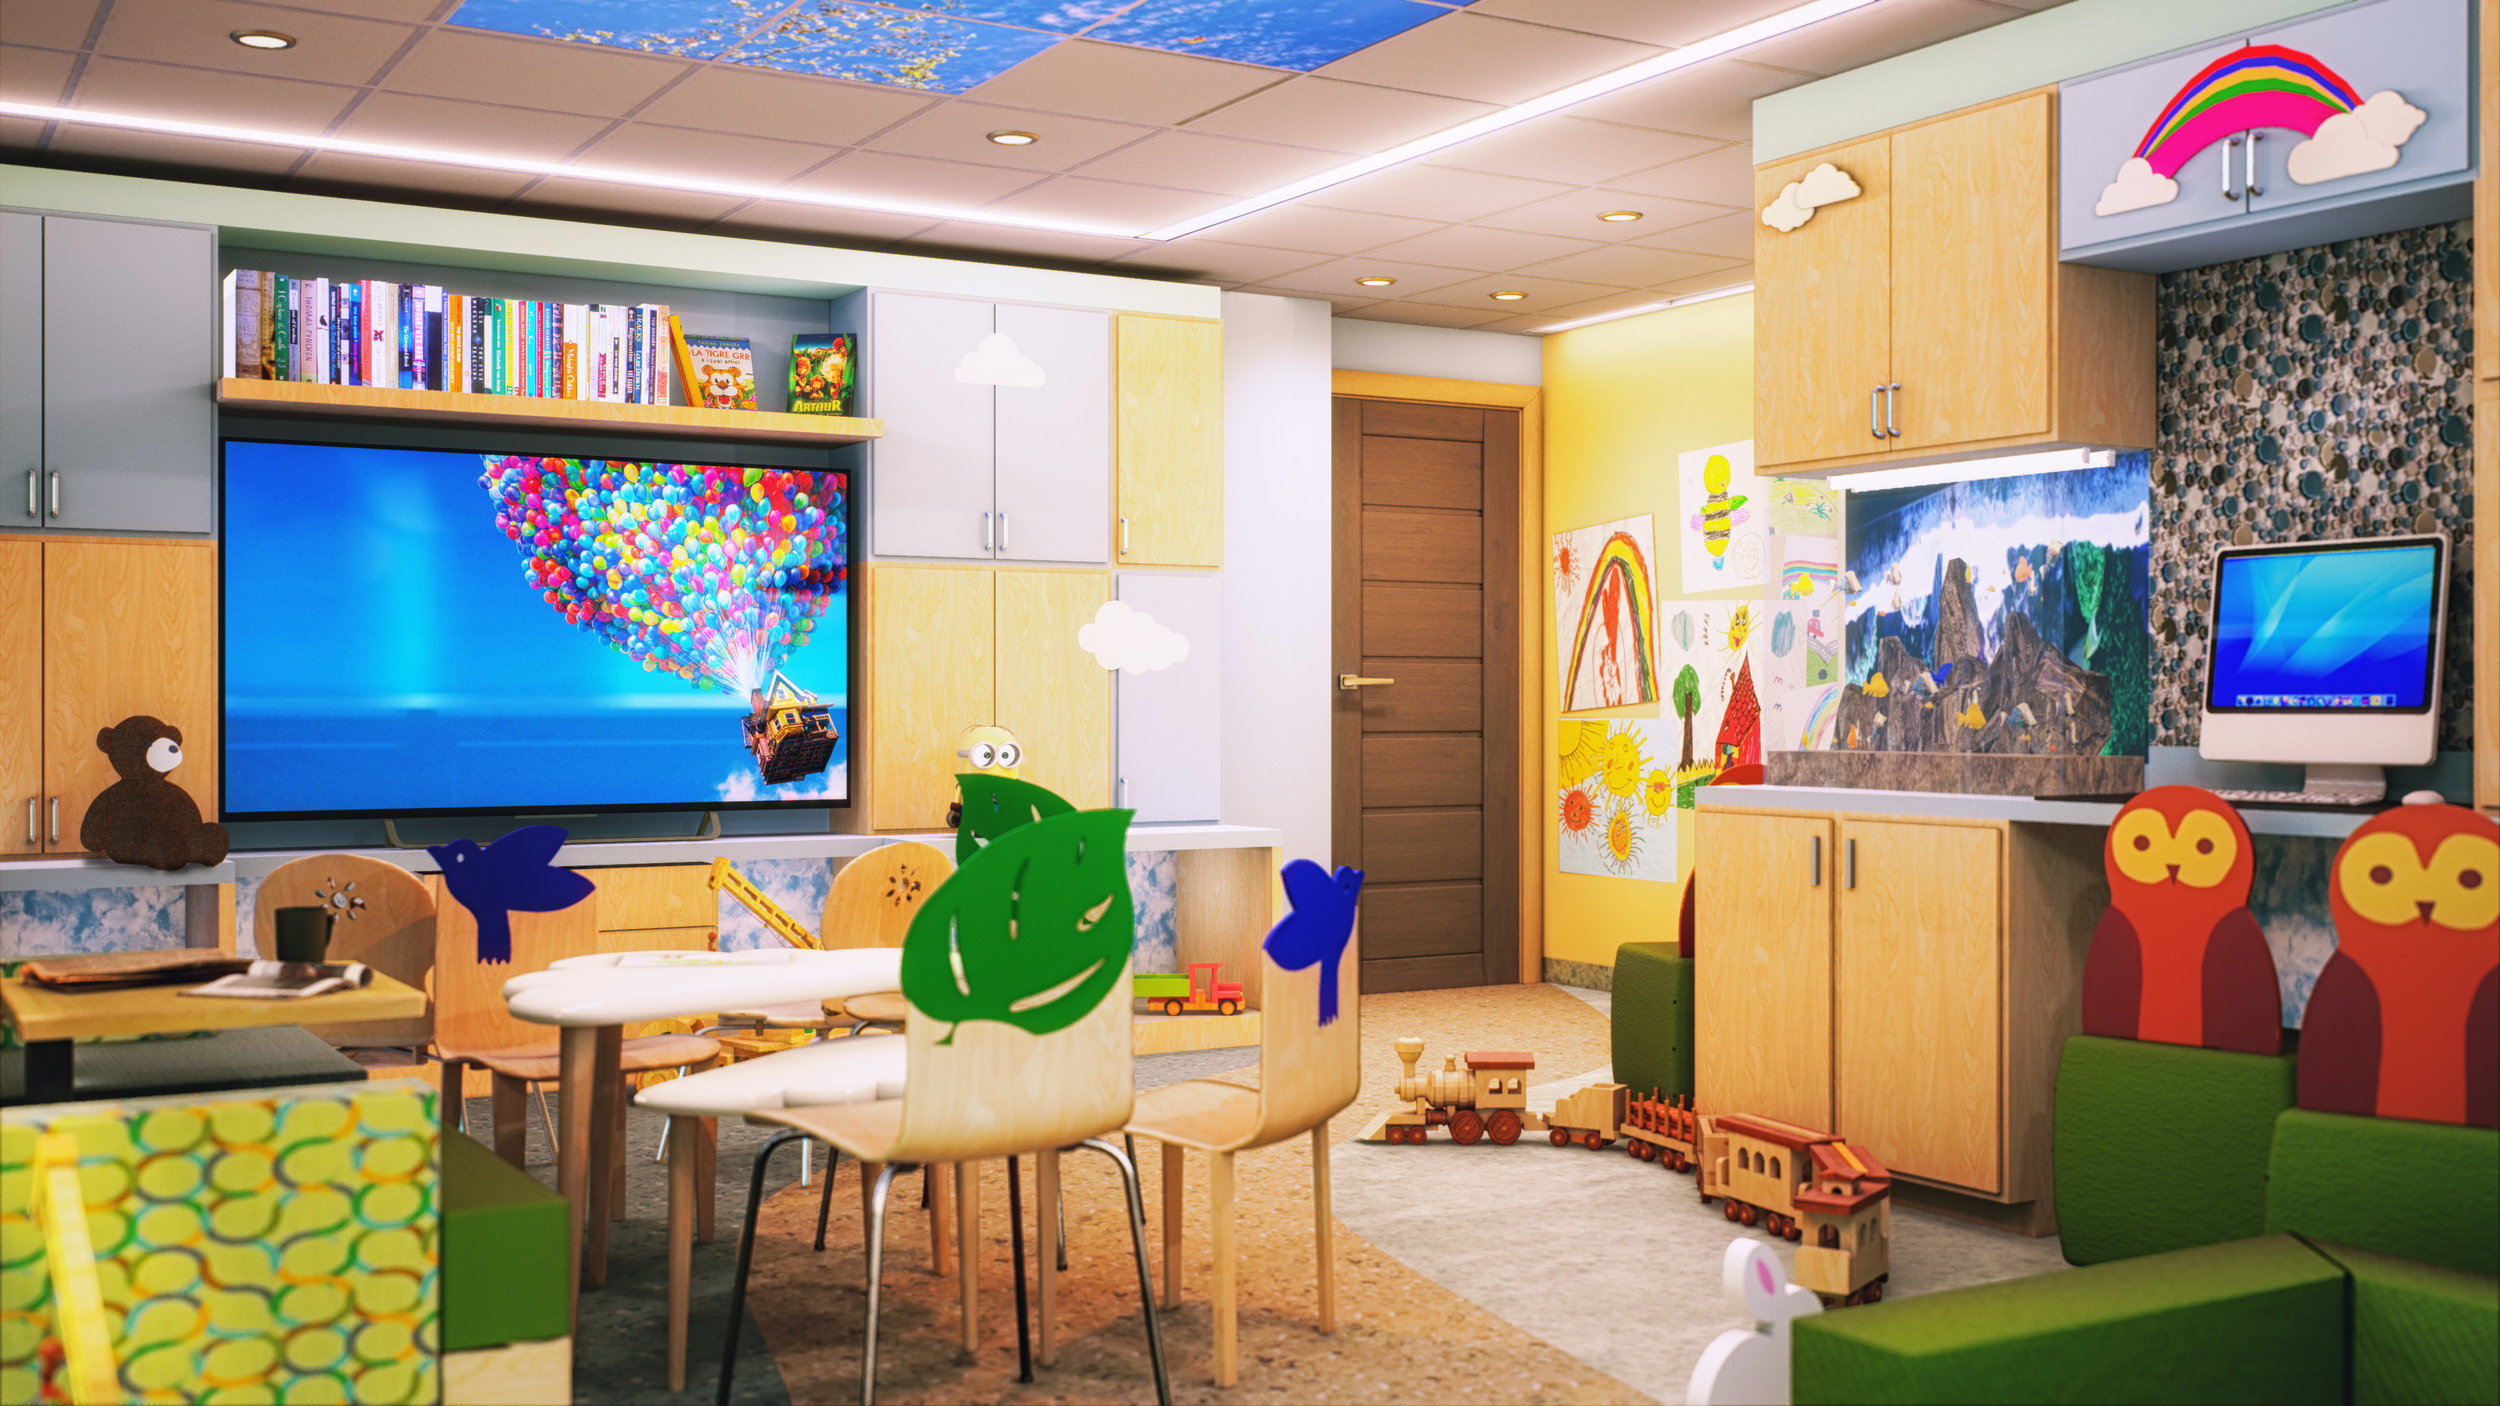 COHEN'S PLAYROOM   VR for the renovation for a children's playroom in a hospital